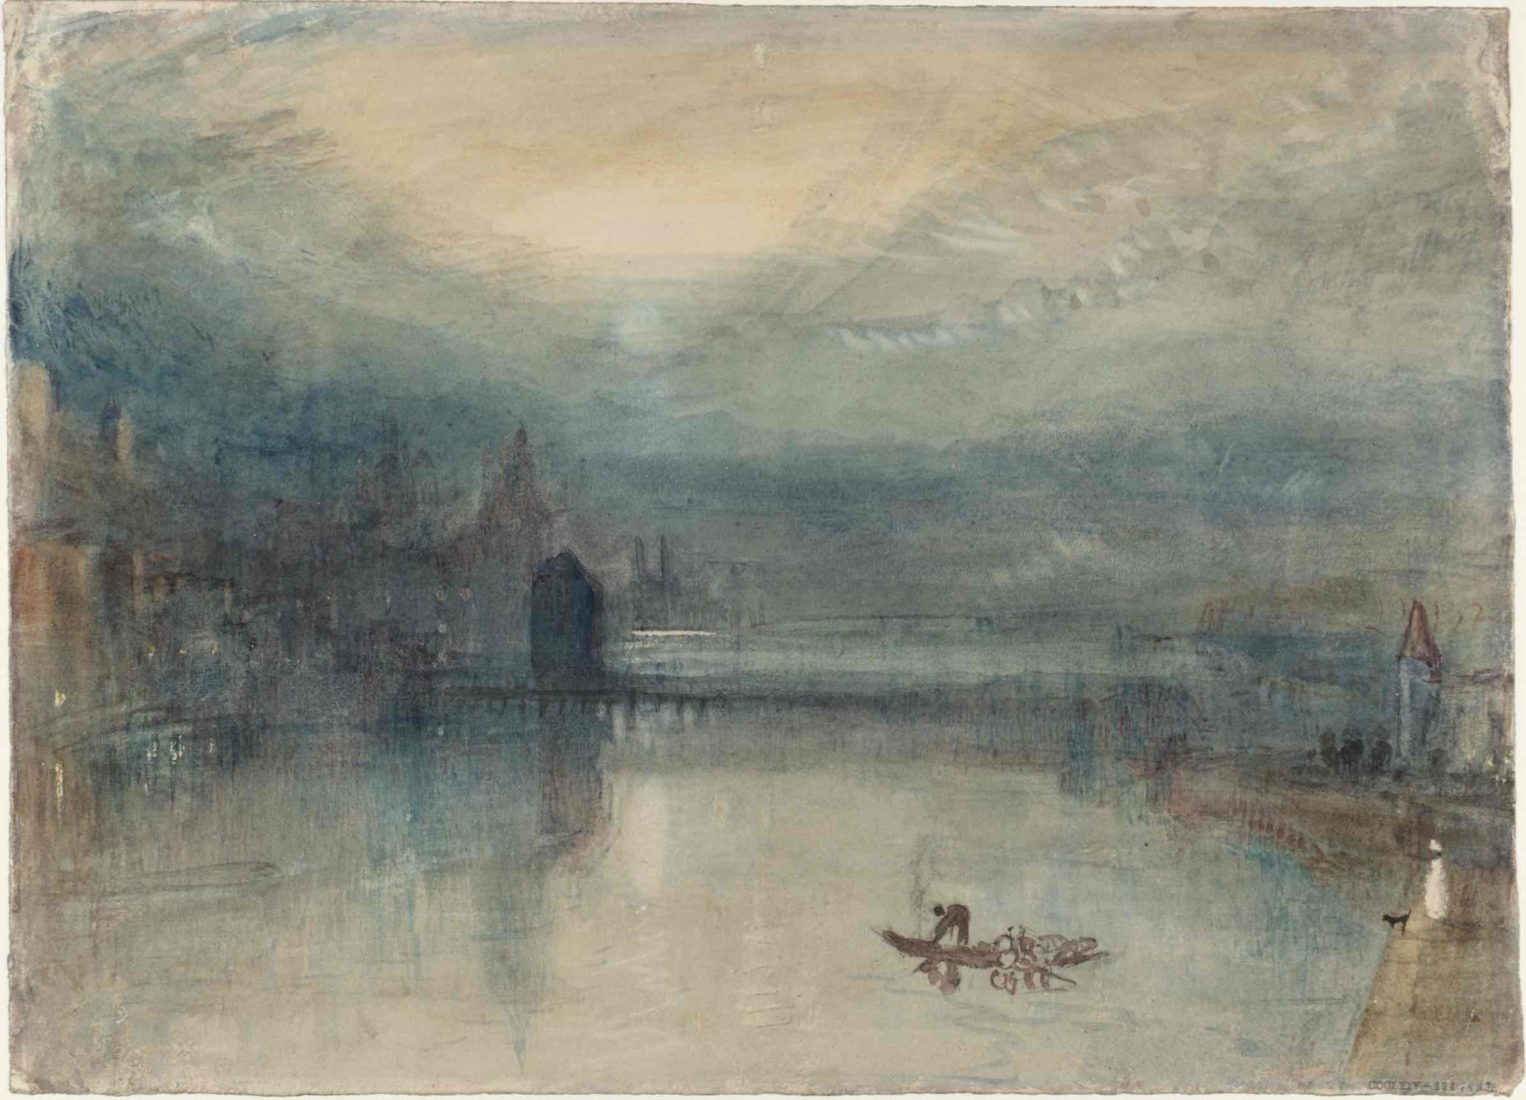 William Turner, Lucerne by Moonlight : Sample Study